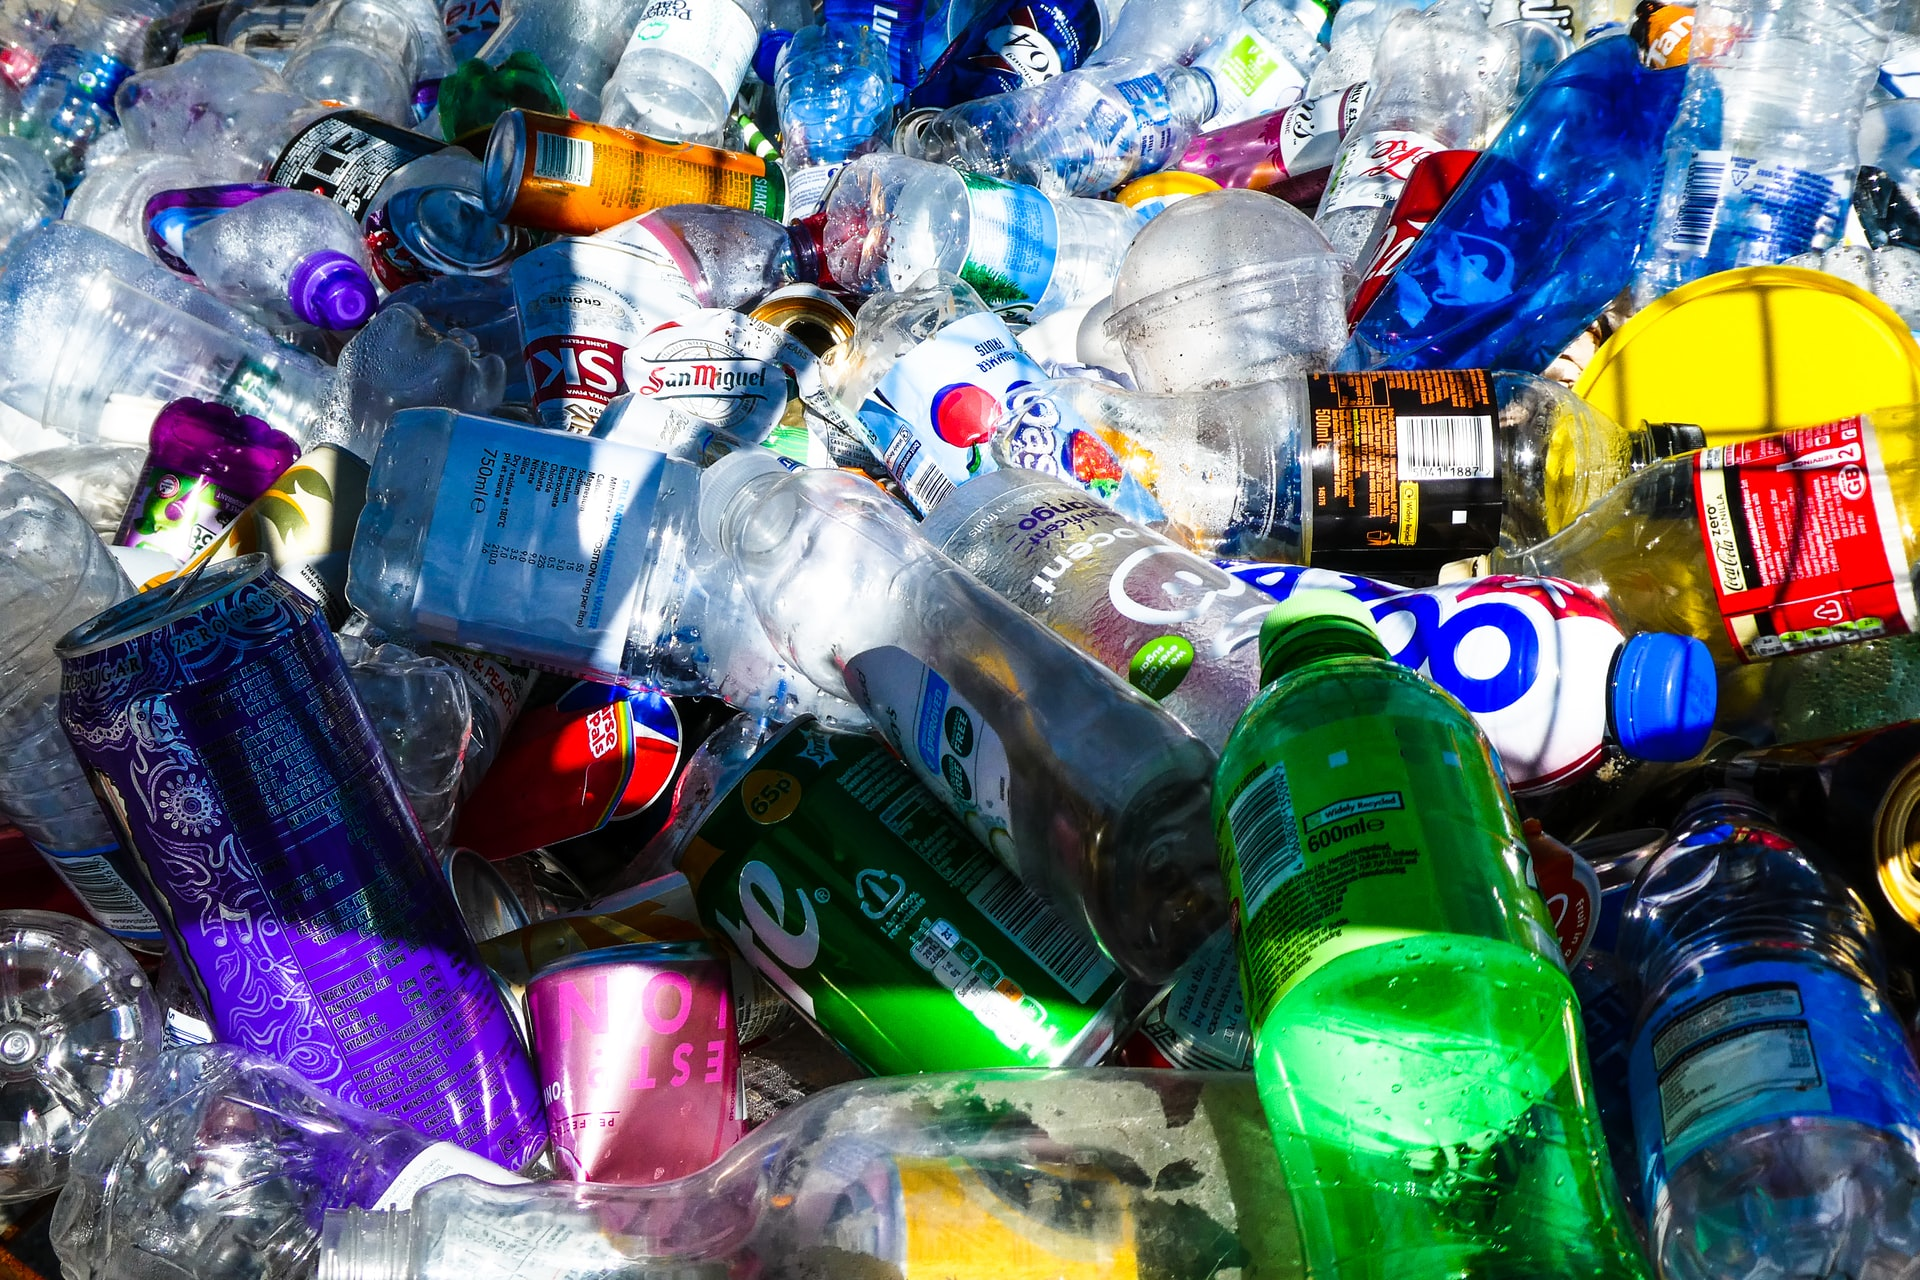 A pile of discarded plastic bottles, aluminum cans, and other garbage